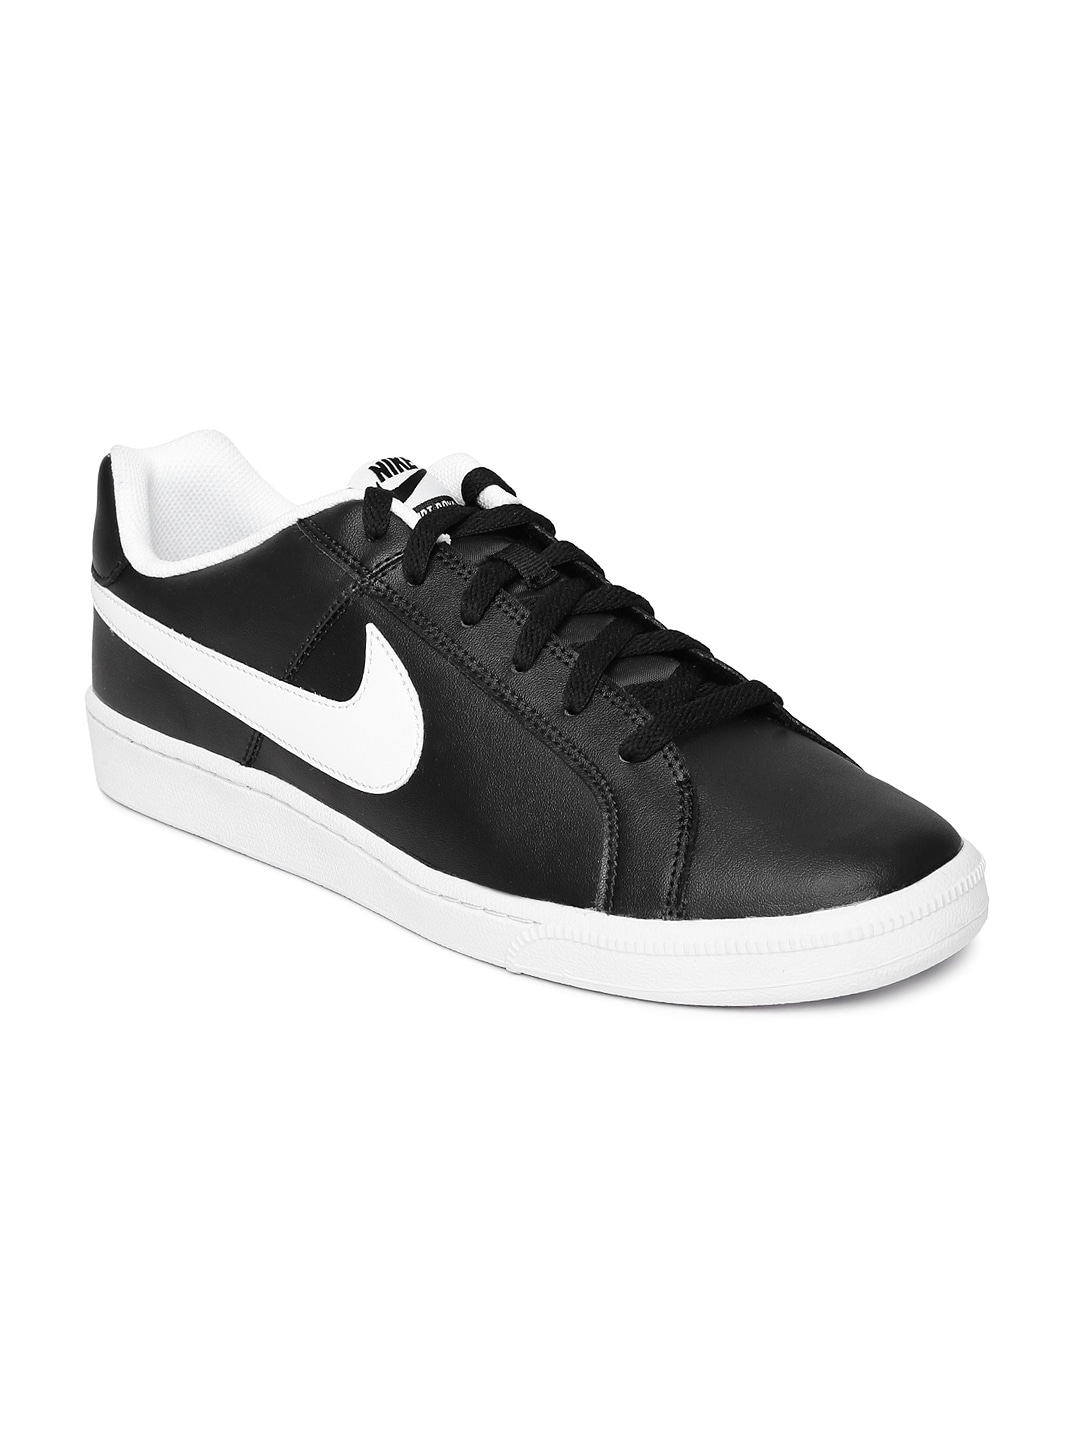 Casual Green Buy Shoes Nike Black sQCrdth